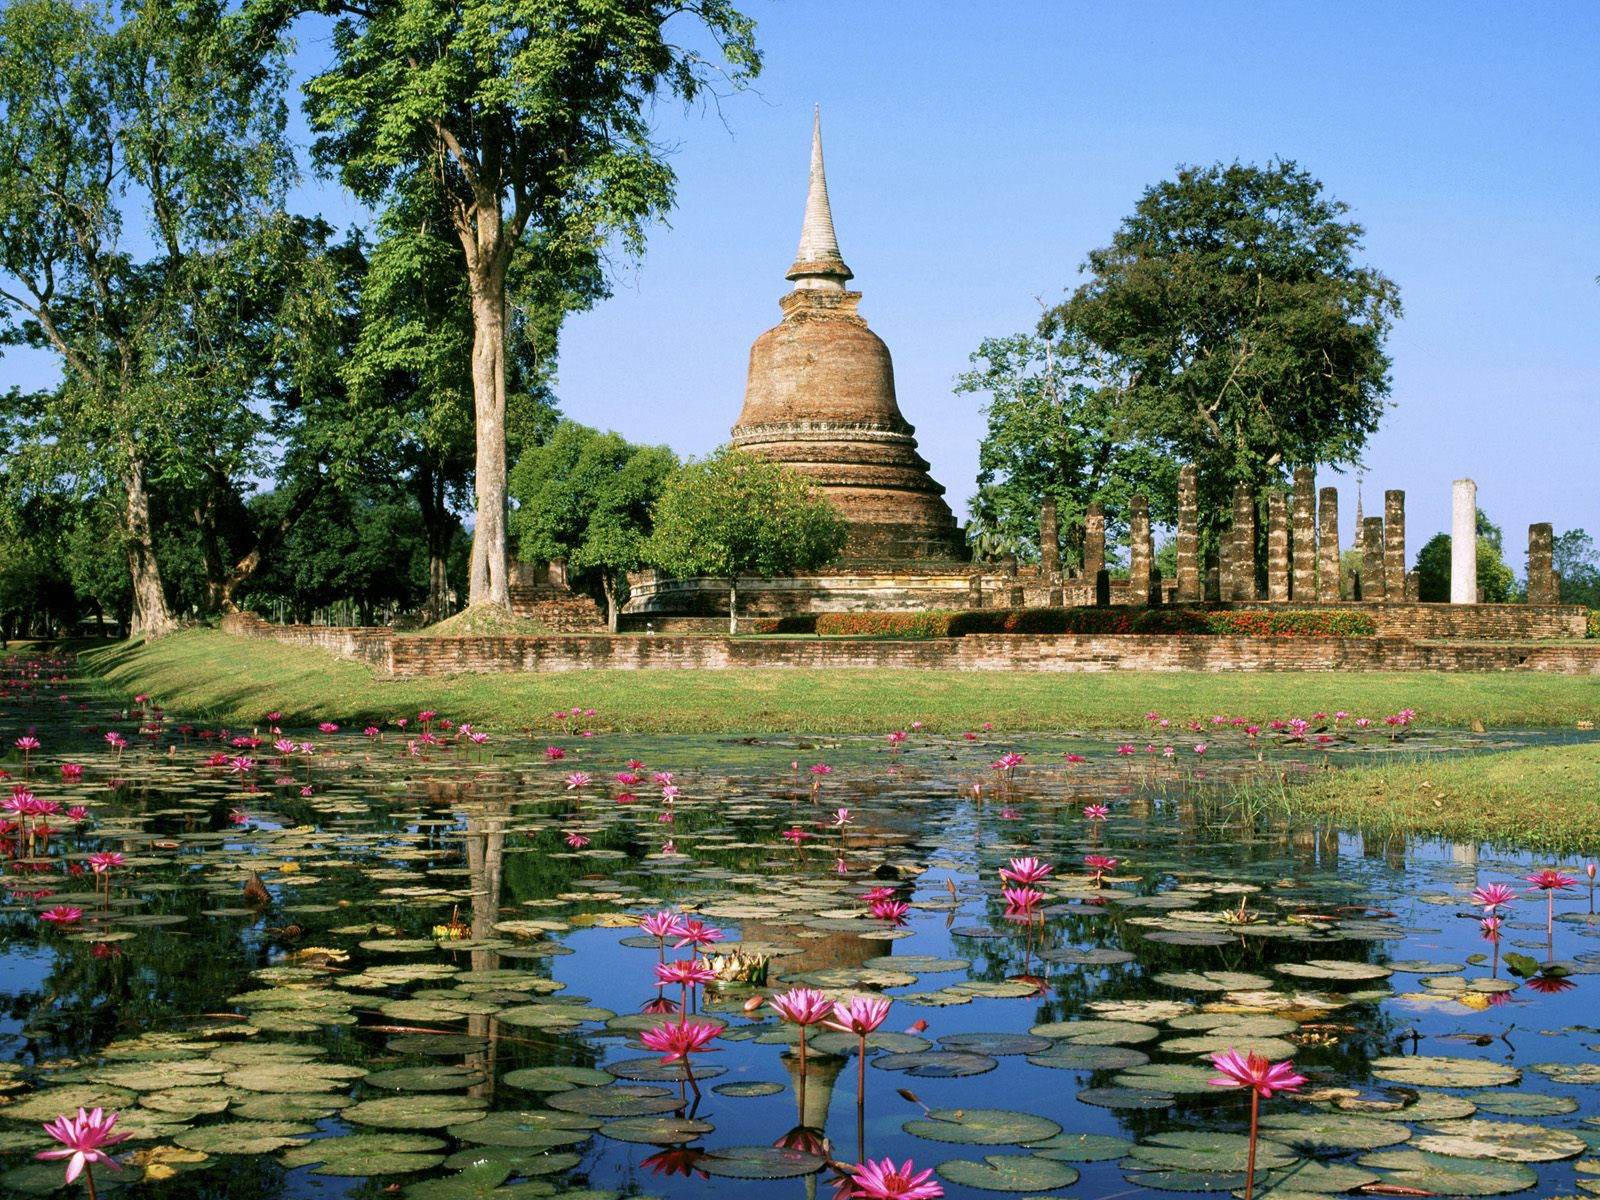 Happiness Resort, Sukhothai, Thailand: THINGS TO DO